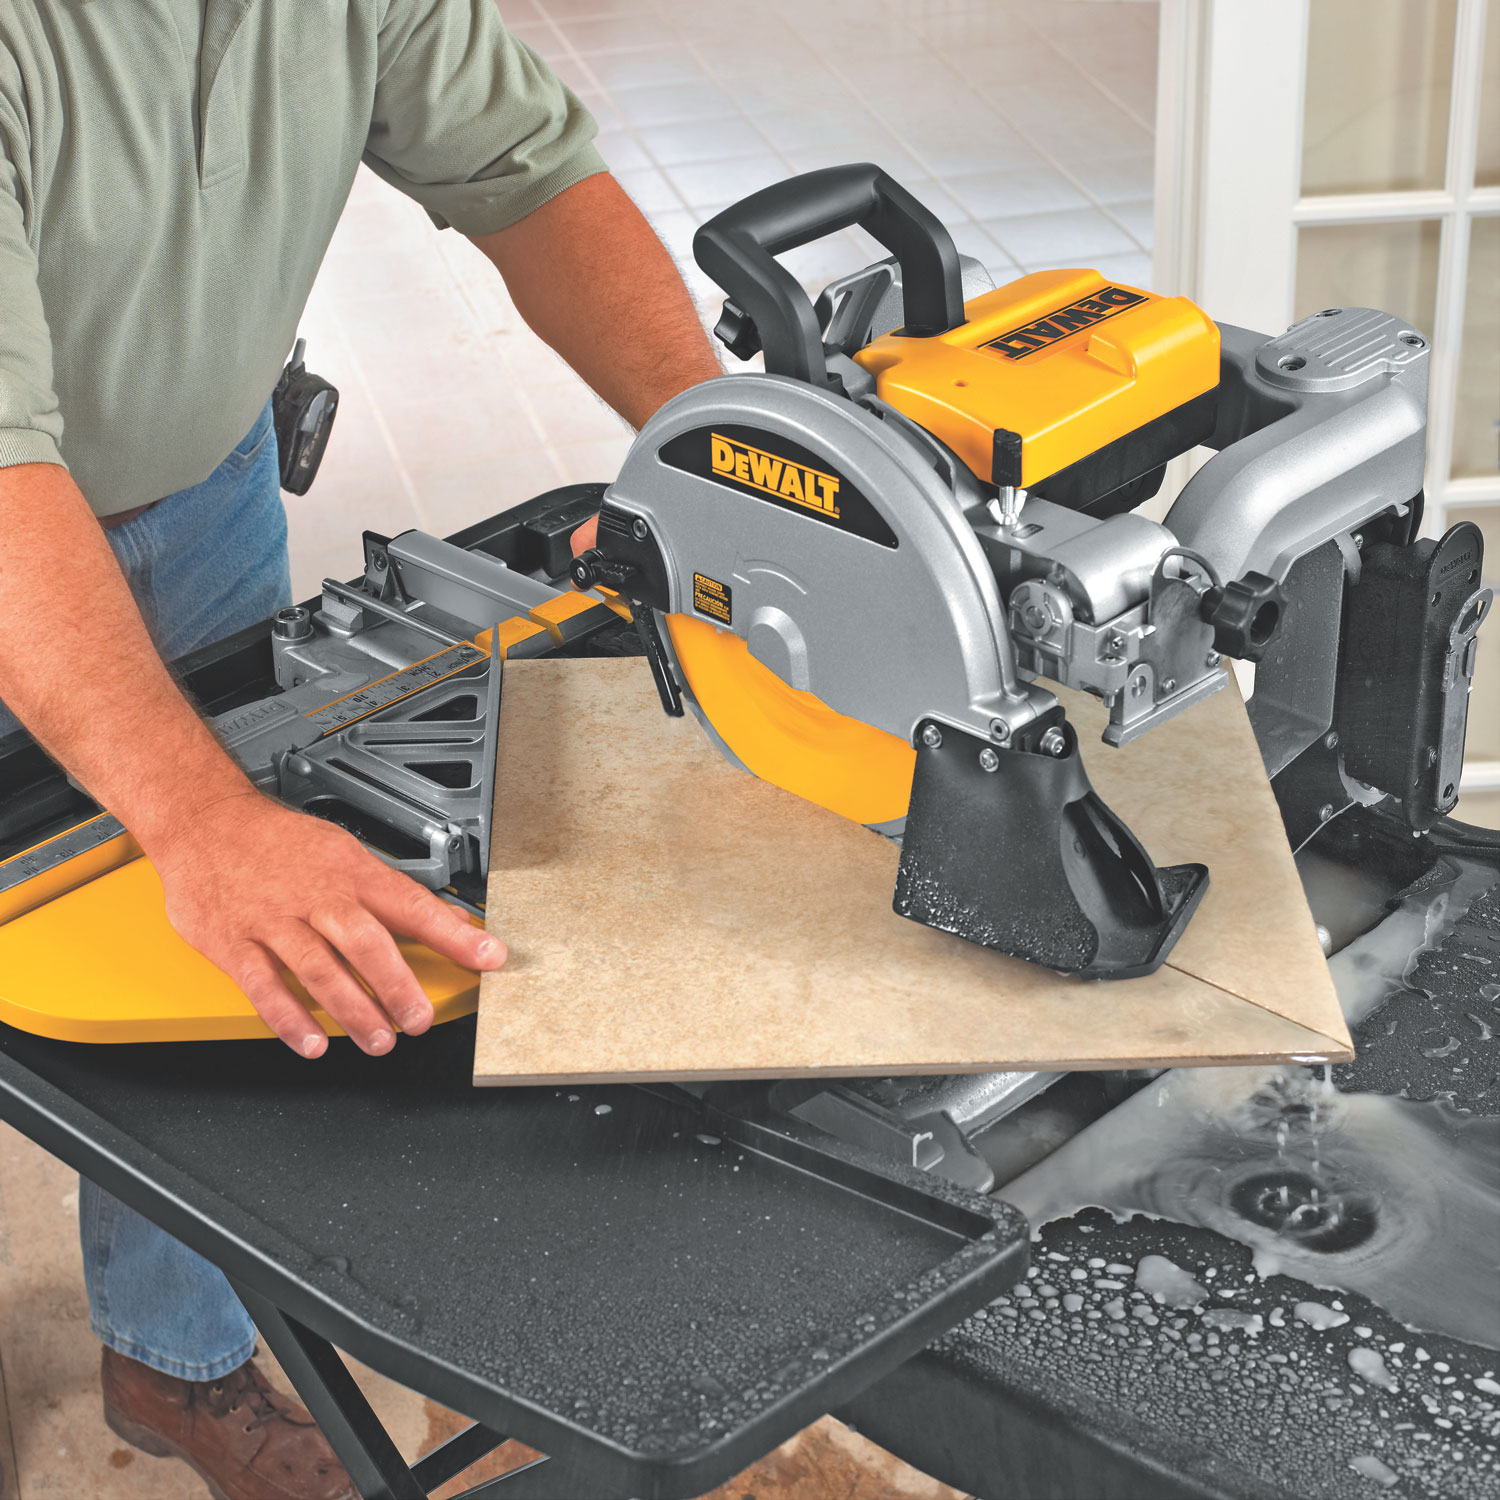 dewalt d24000 1 5 horsepower 10 inch wet tile saw power. Black Bedroom Furniture Sets. Home Design Ideas